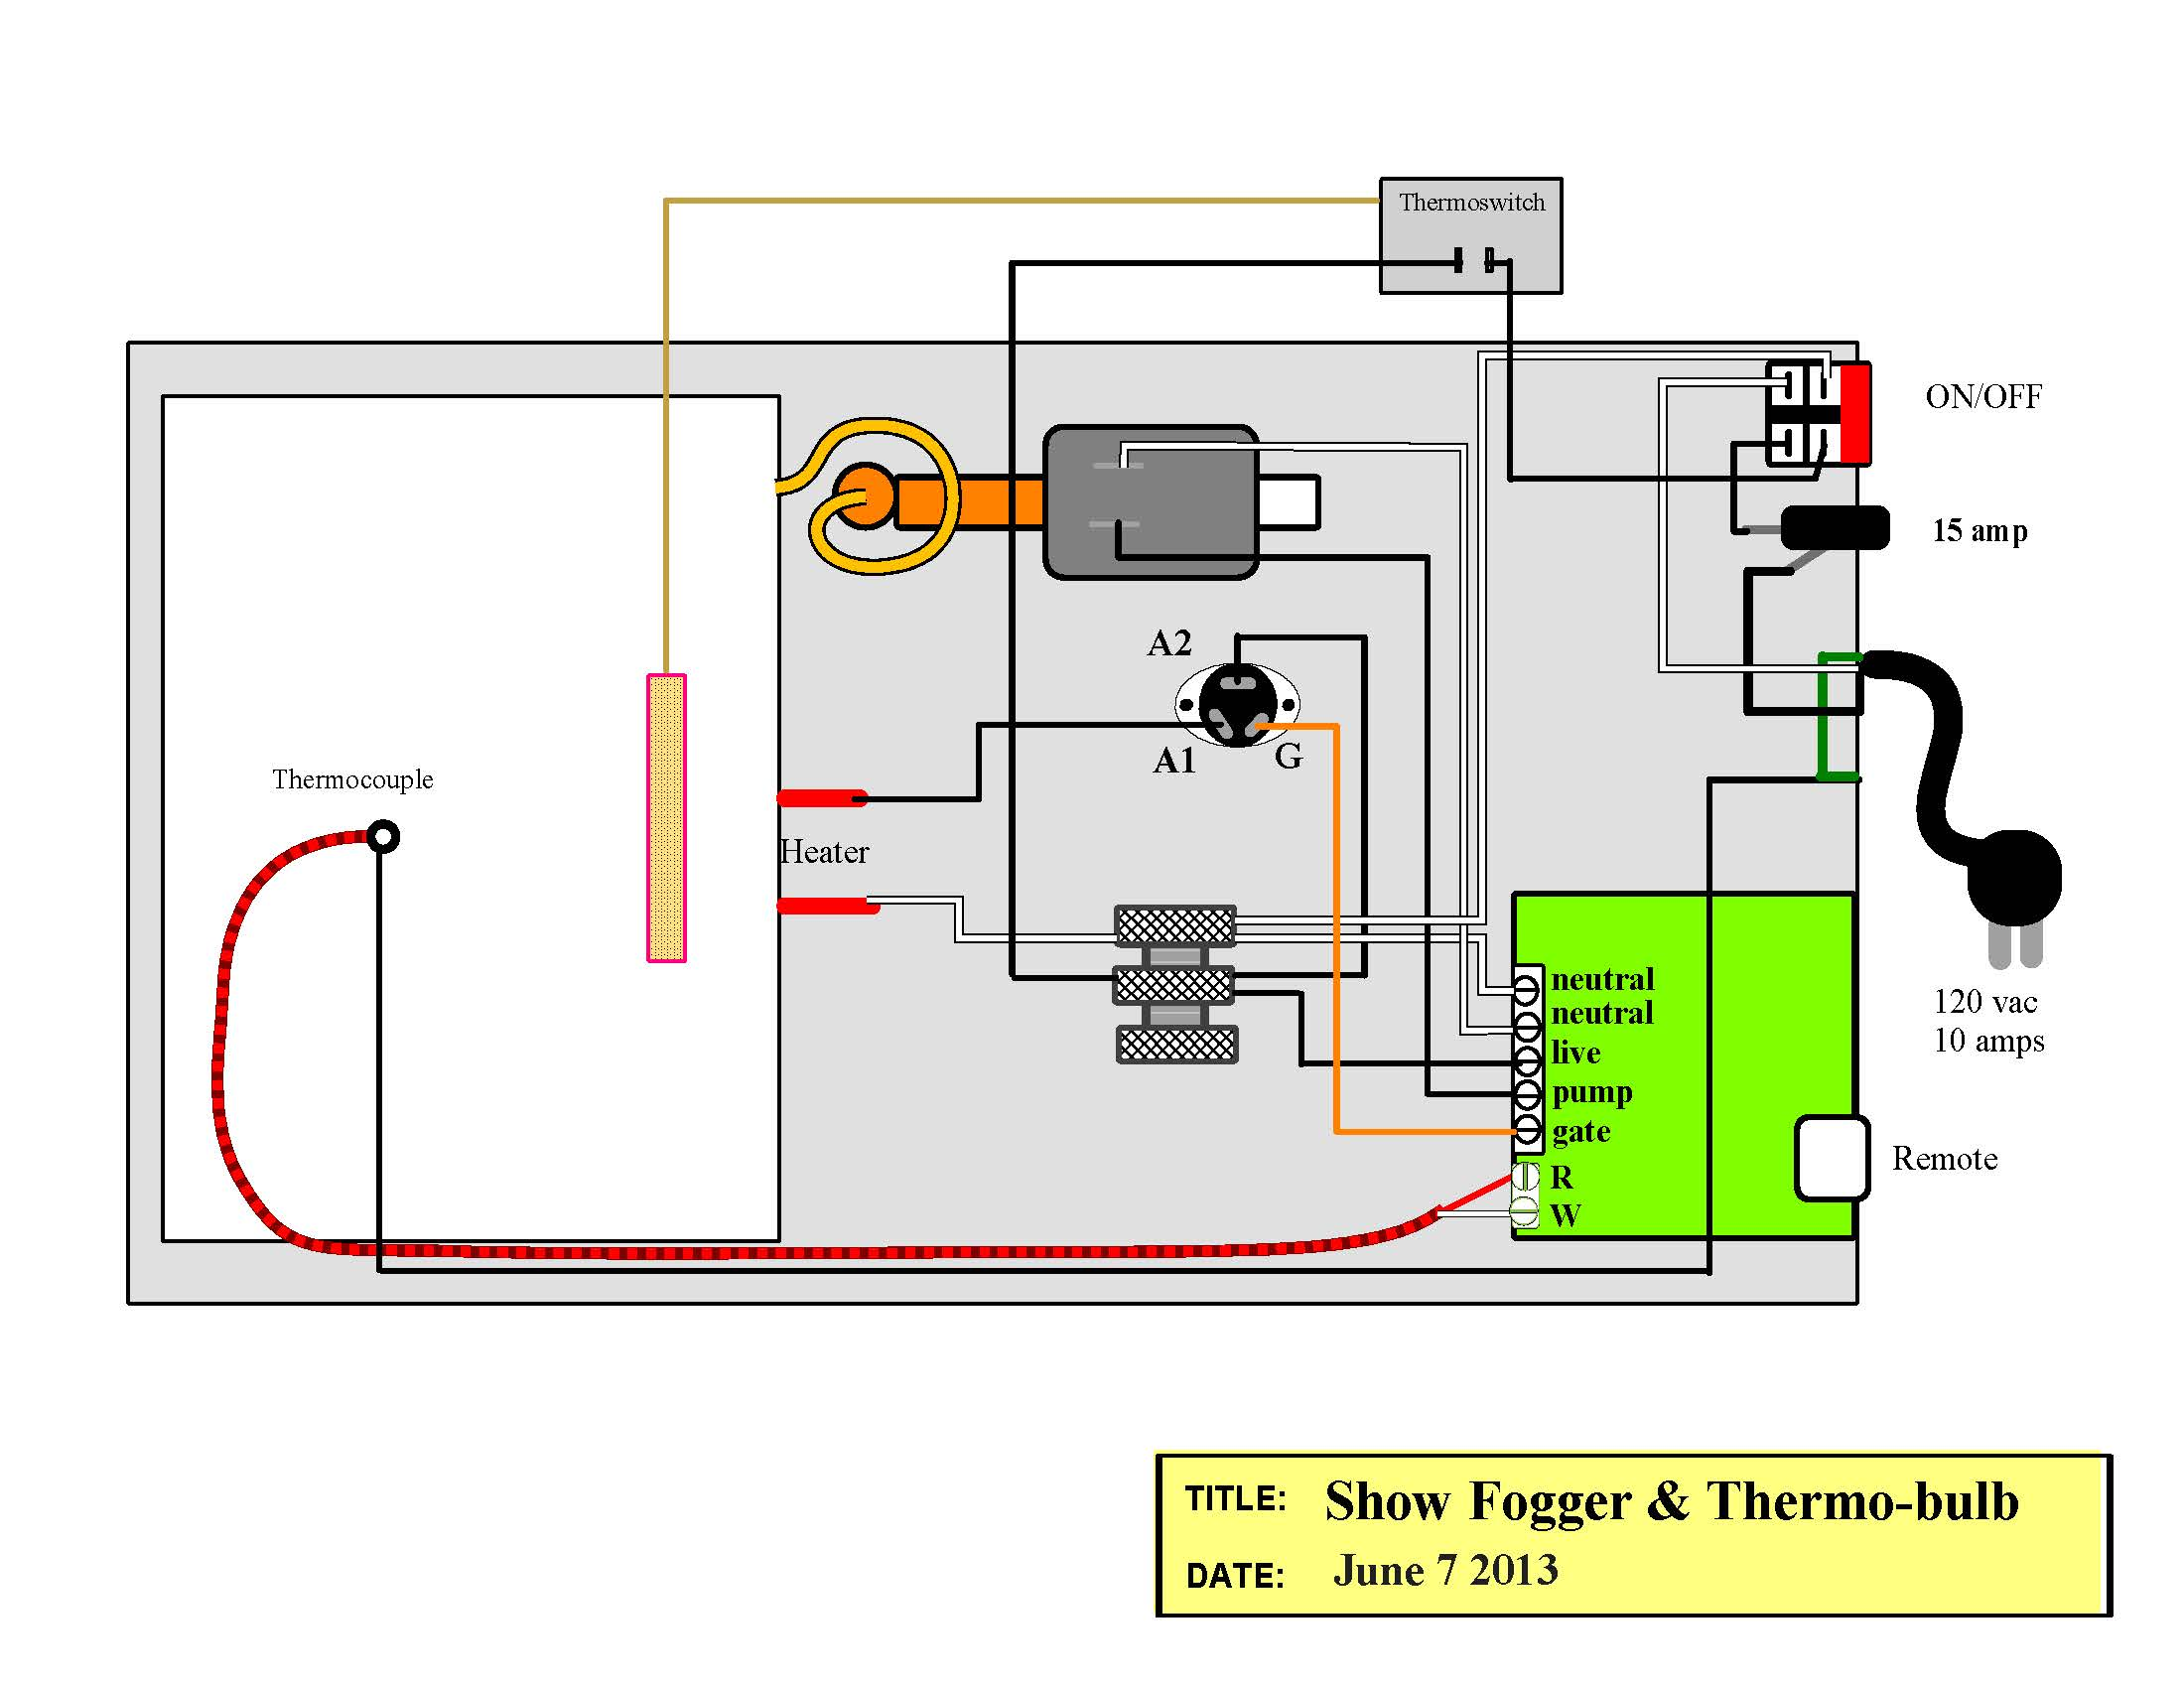 WRG-1635] Fog Machine Wiring Diagram on